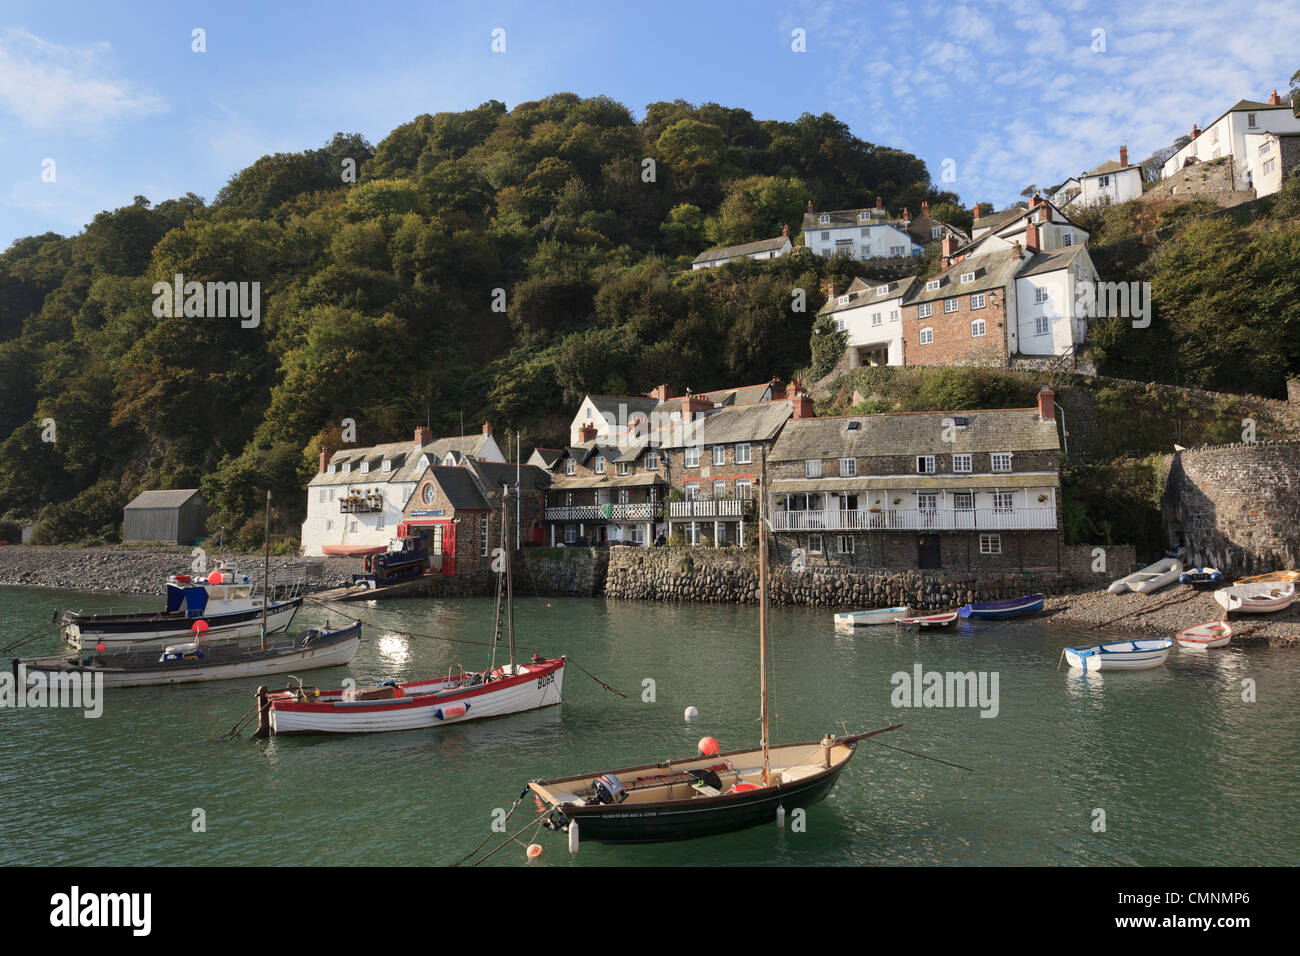 Clovelly, North Devon, England, UK. Coastal scene with boats in the harbour below the village on a steep hillside - Stock Image